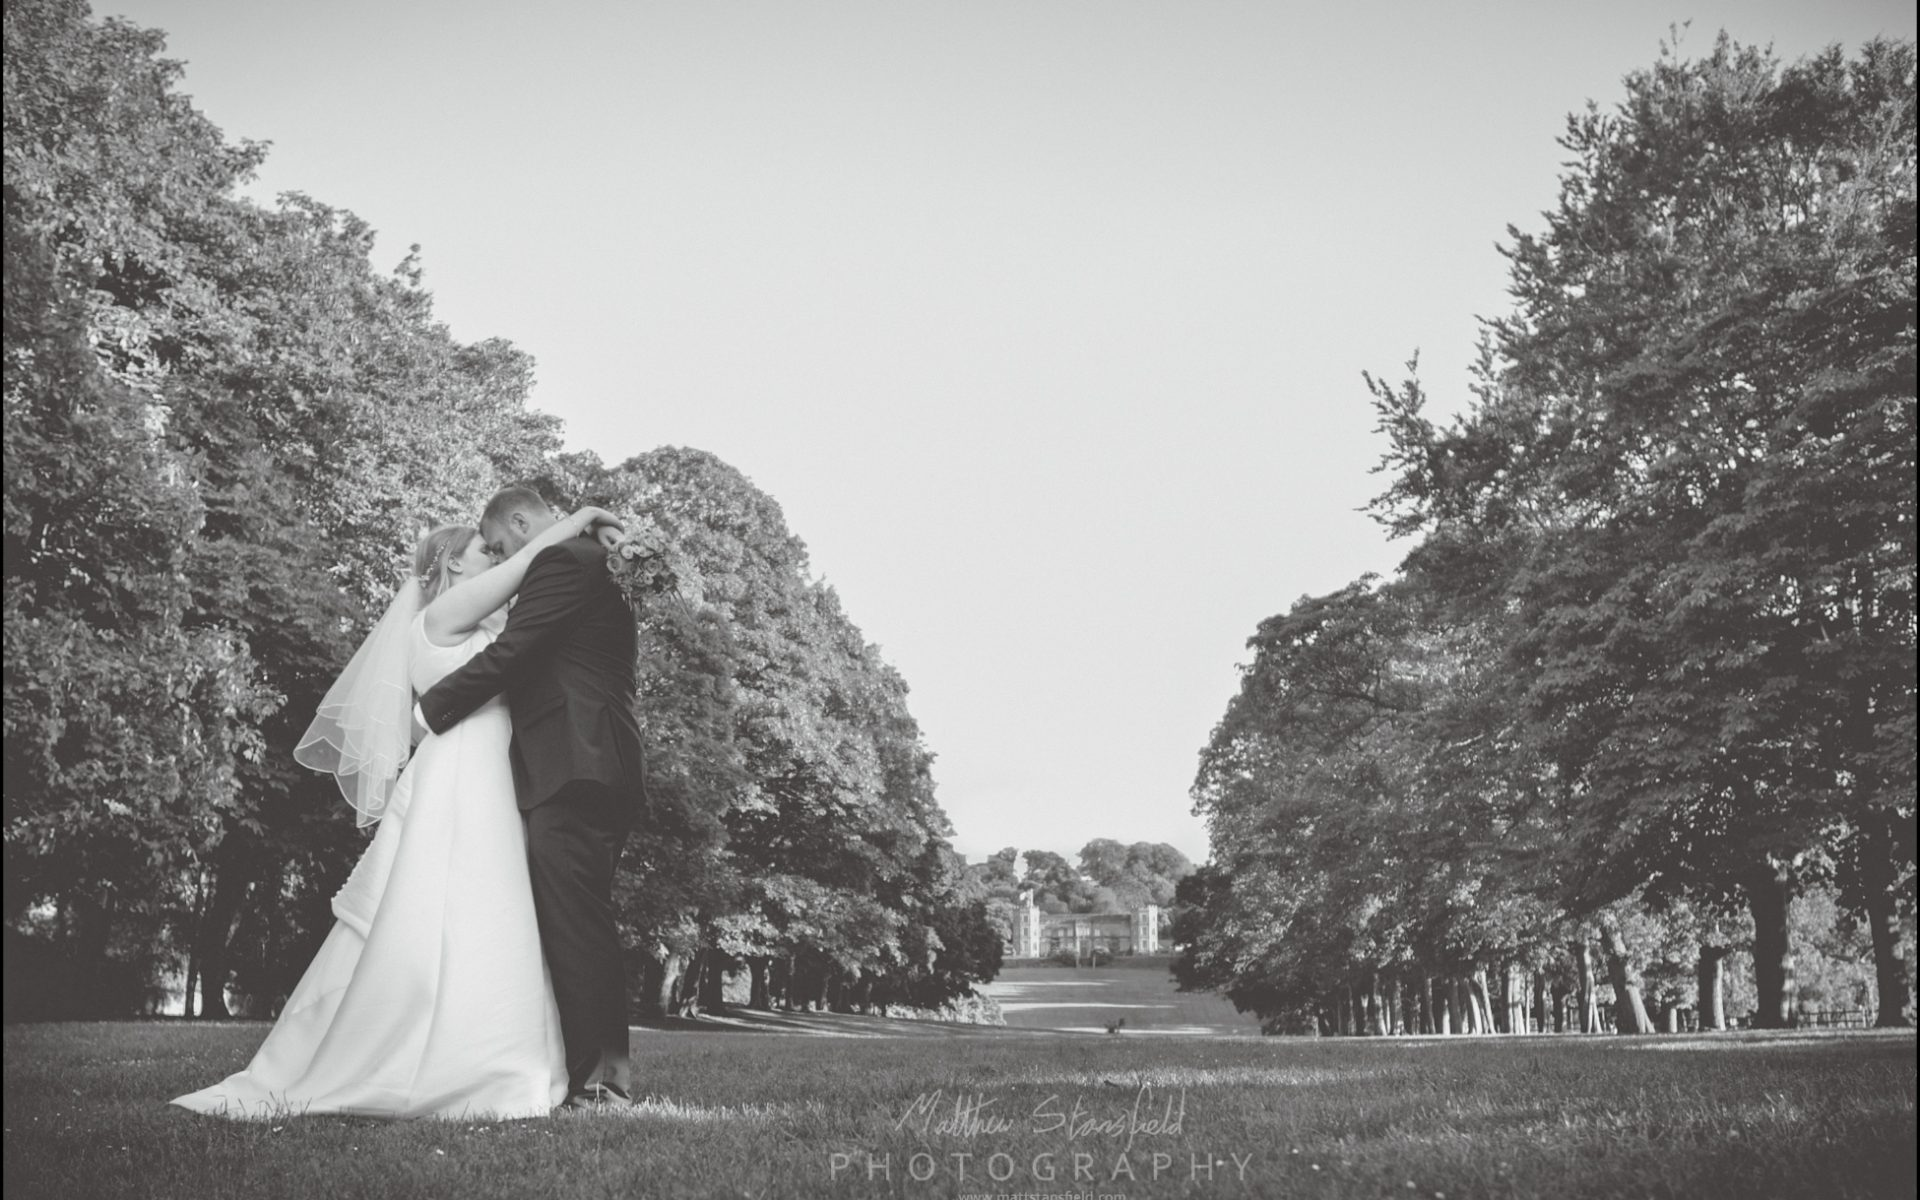 Cornwall Wedding Photography Preview - Mount Edgecumbe Country Park